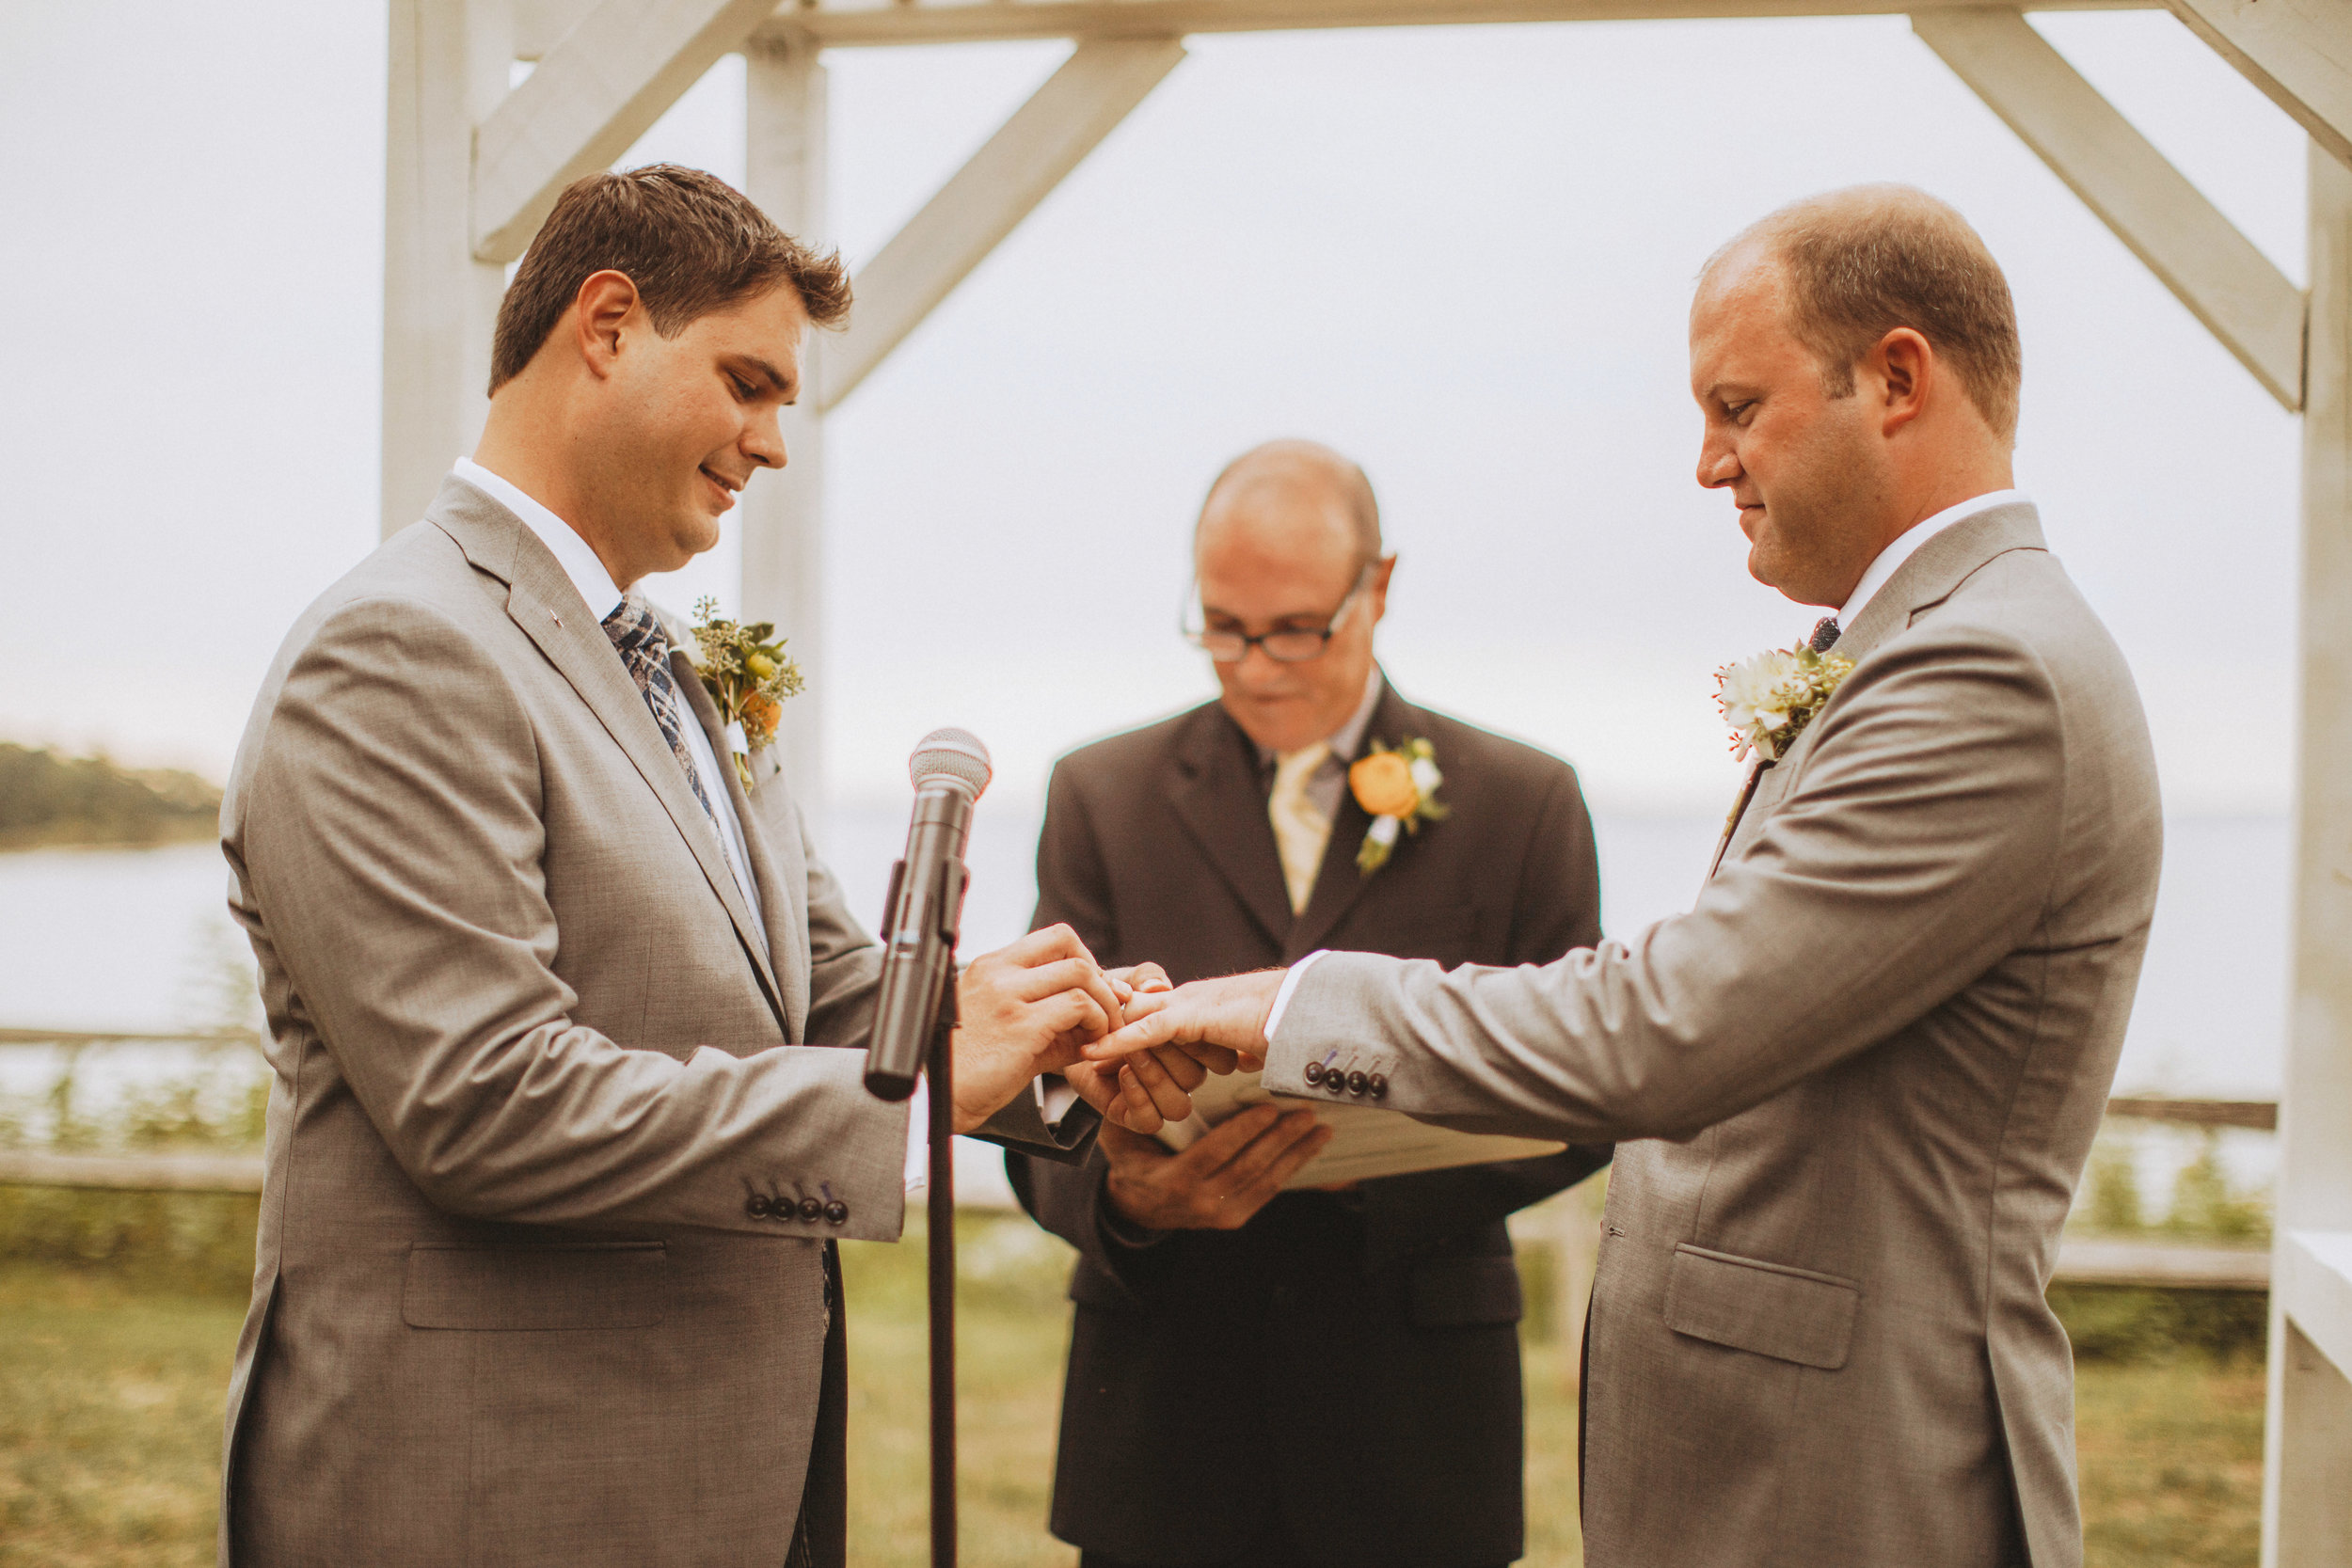 ring exchange during wedding ceremony